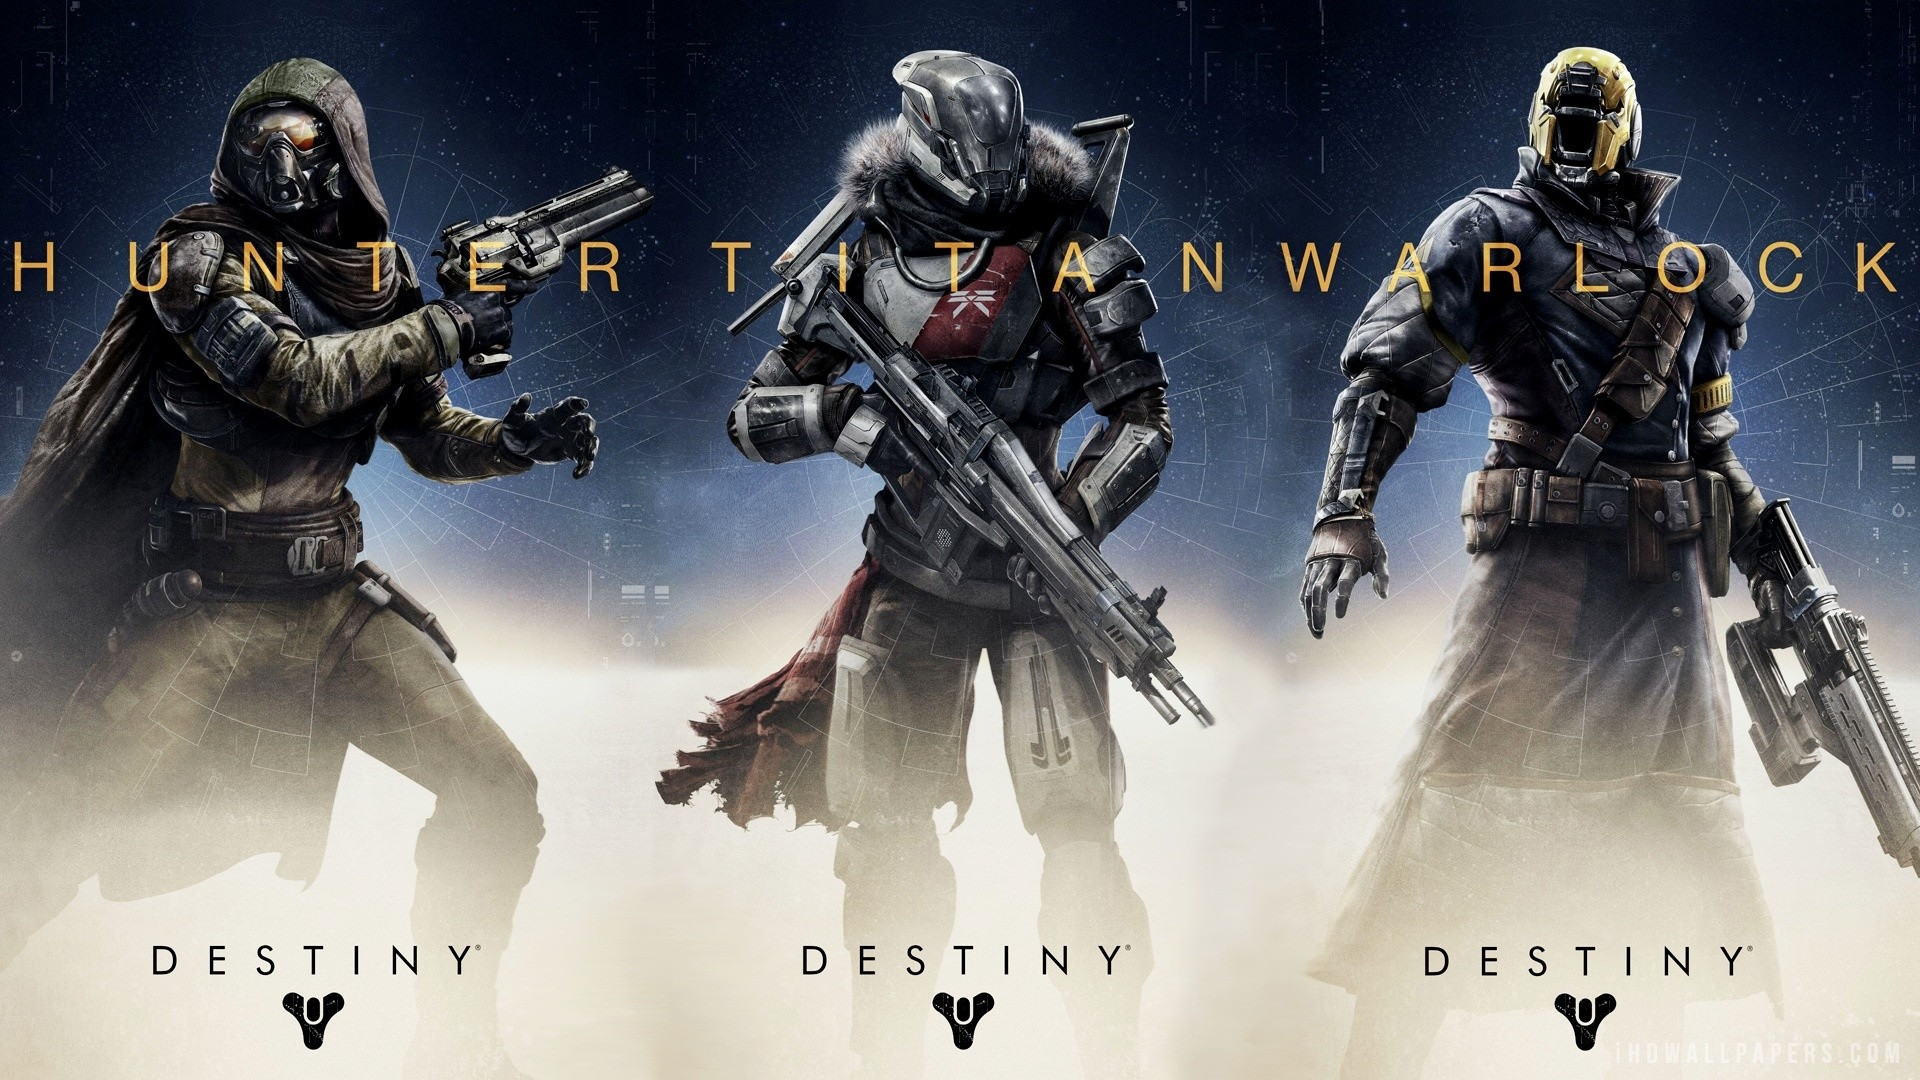 1920x1080 Destiny Hunter Titan Warlock HD Wallpaper - iHD Wallpapers